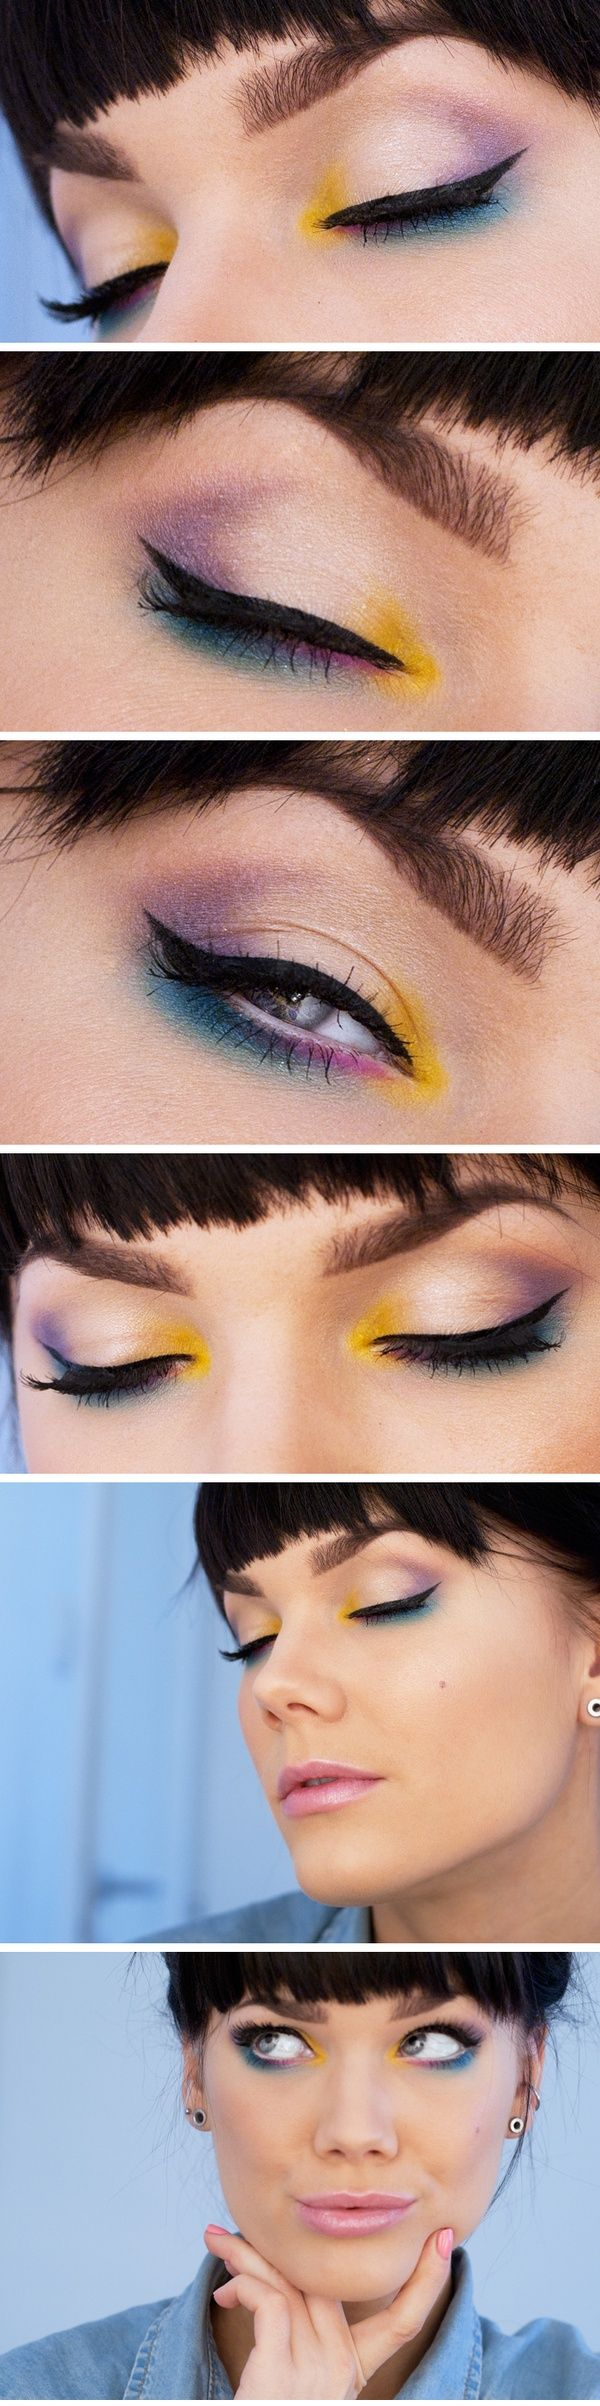 best makeup and nails images on Pinterest  Make up looks Nail